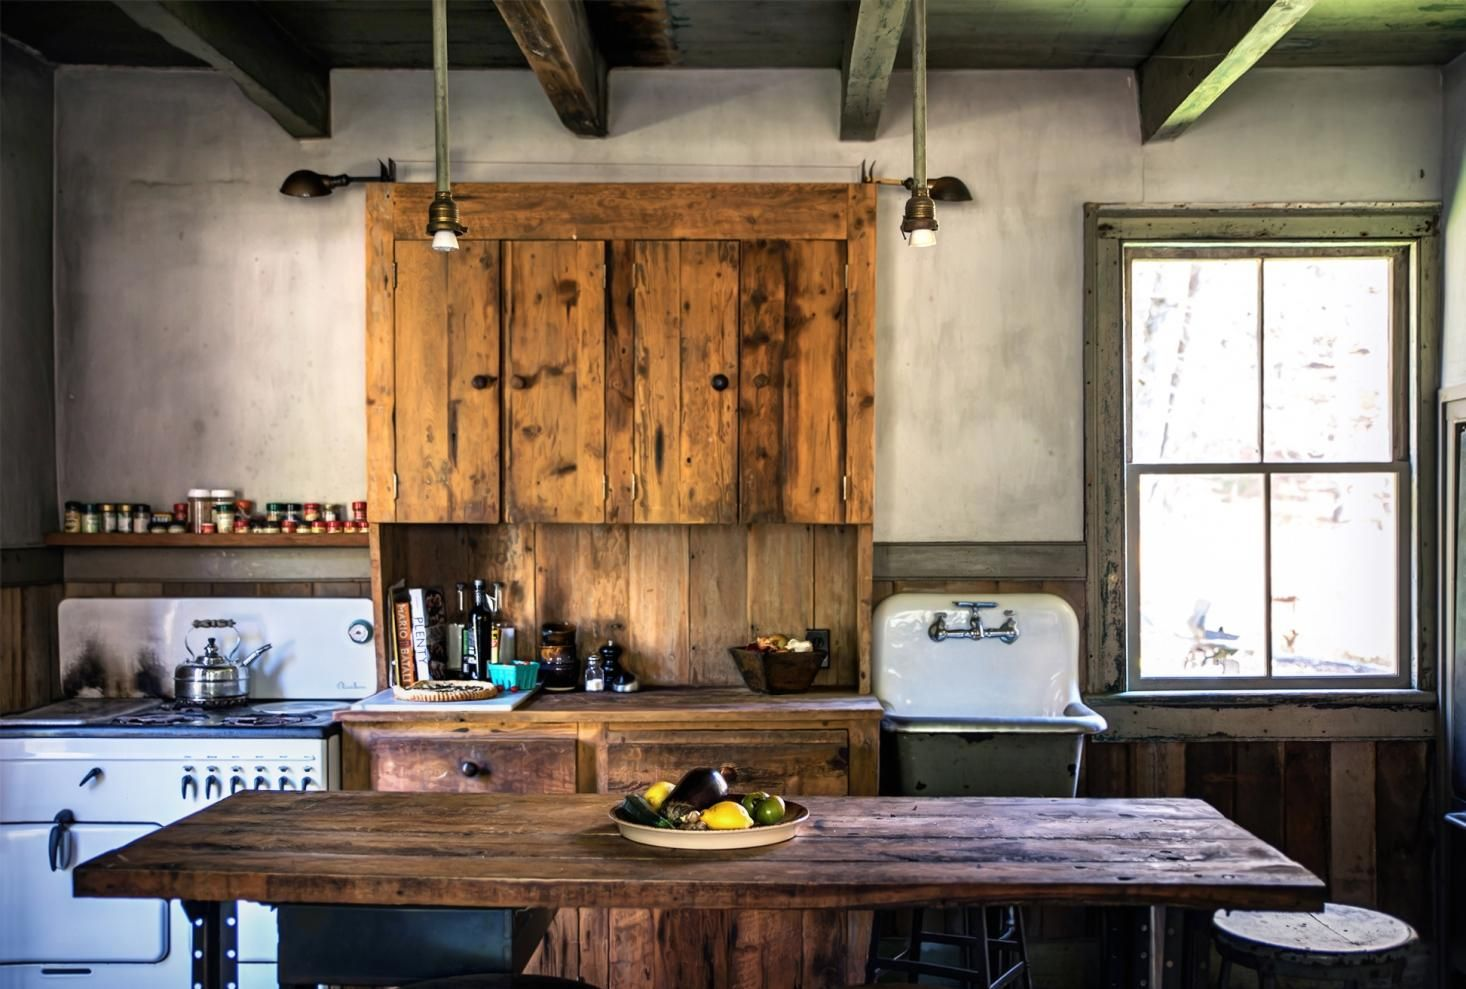 Ordinaire Rustic Farmhouse Kitchen In The Hudson Valley.